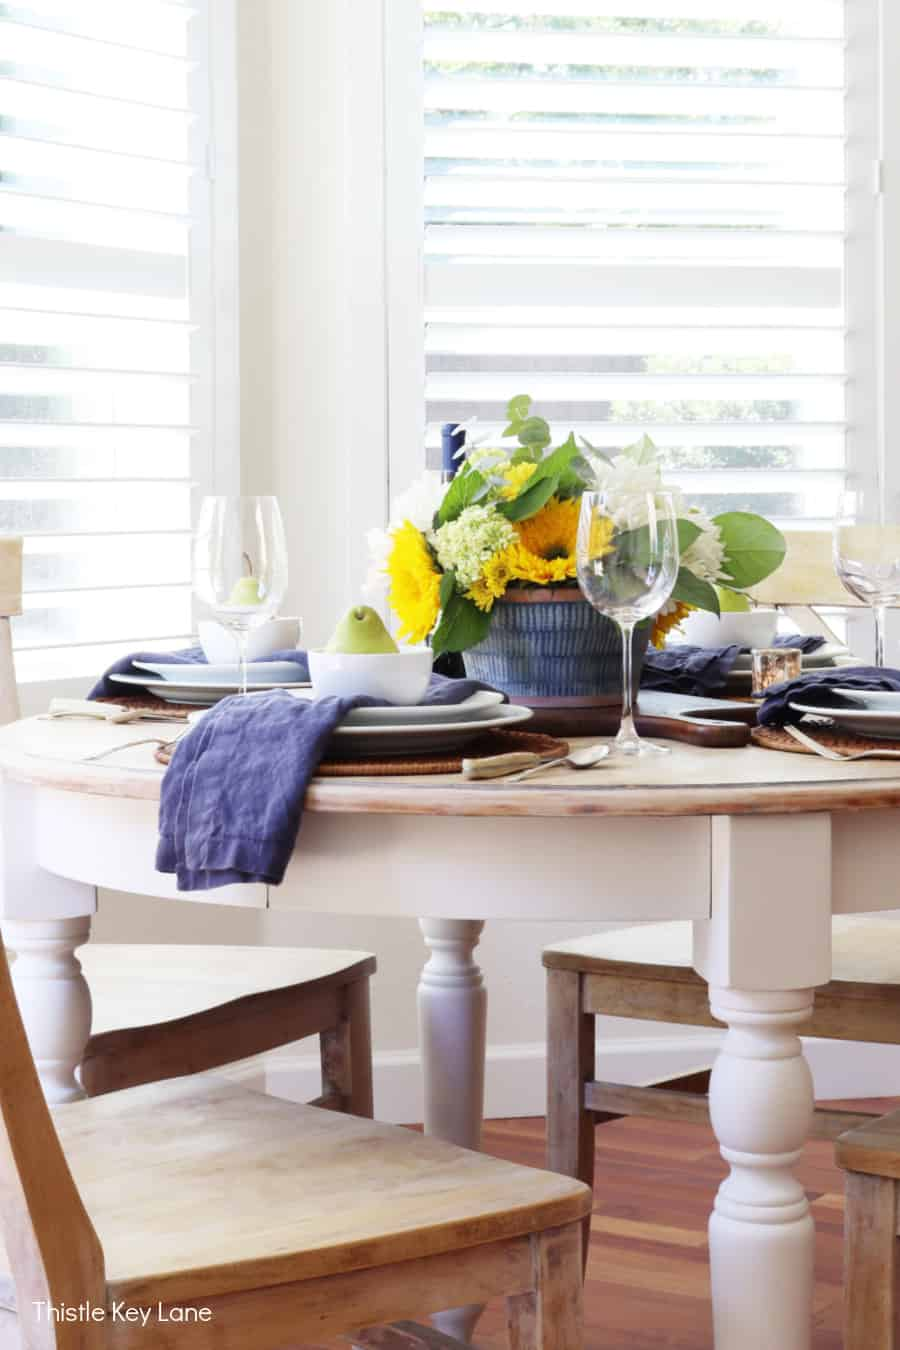 Table setting for an early fall with sunflowers.